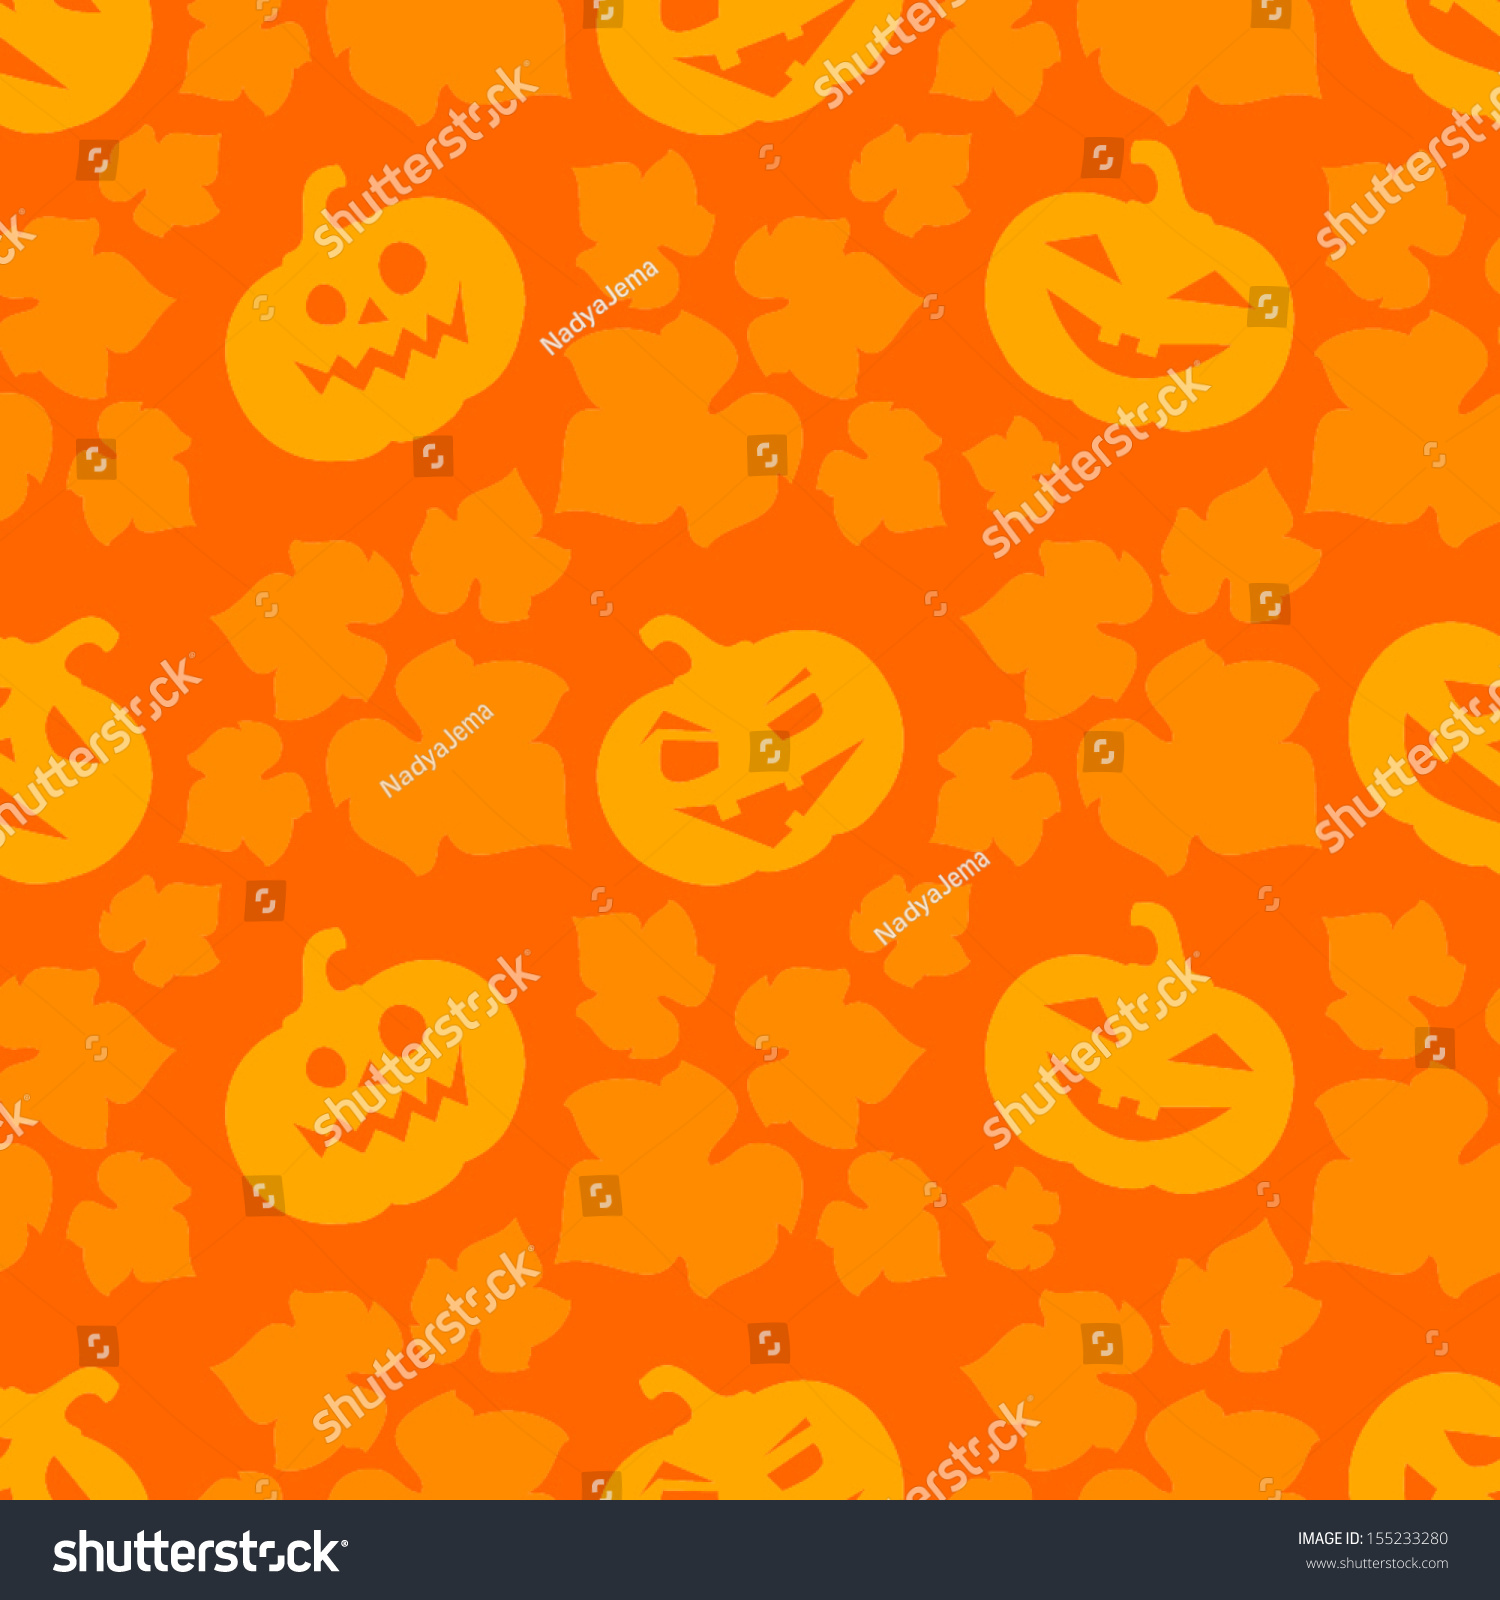 Download Wallpaper Halloween Gold - stock-vector-halloween-vector-background-holiday-autumn-wallpaper-155233280  Gallery_519590.jpg